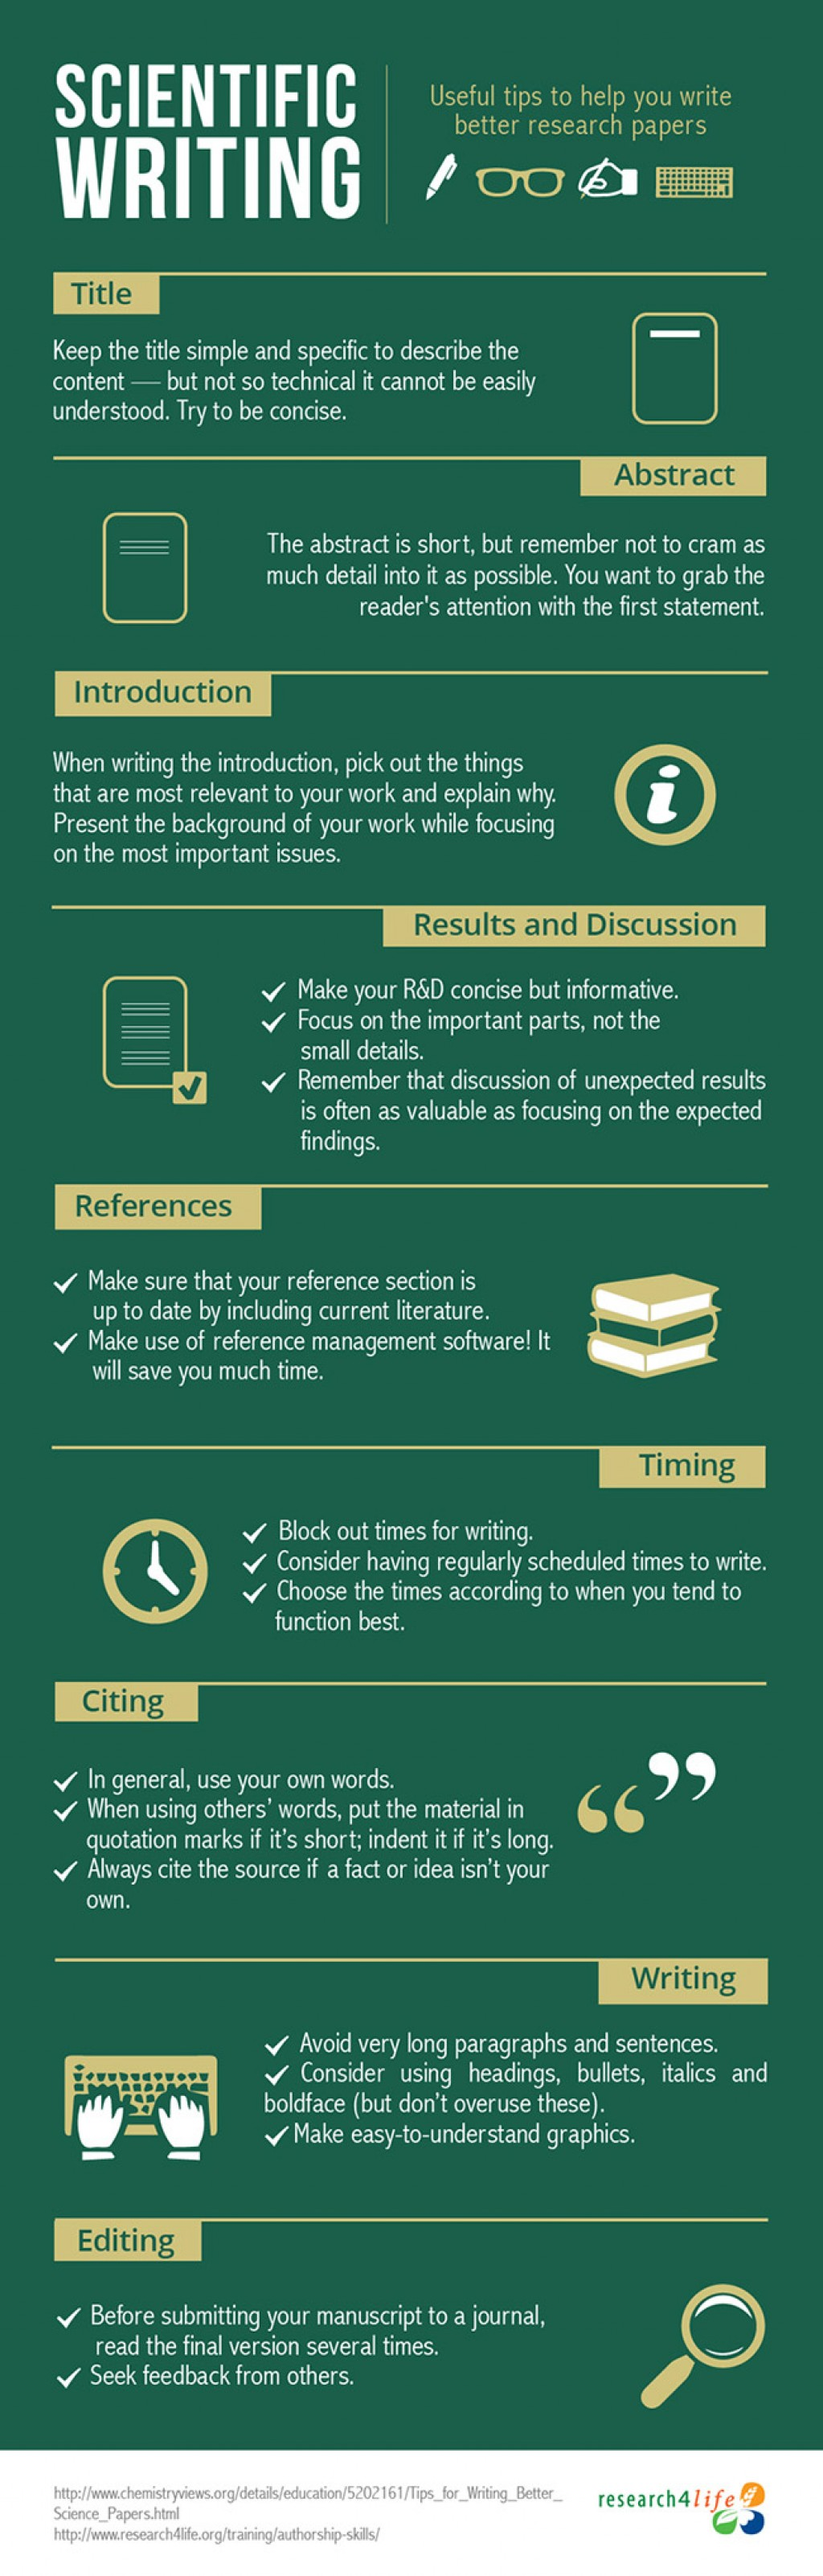 005 Can I Write My Own Research Paper Infographic Science Writing Singular Large